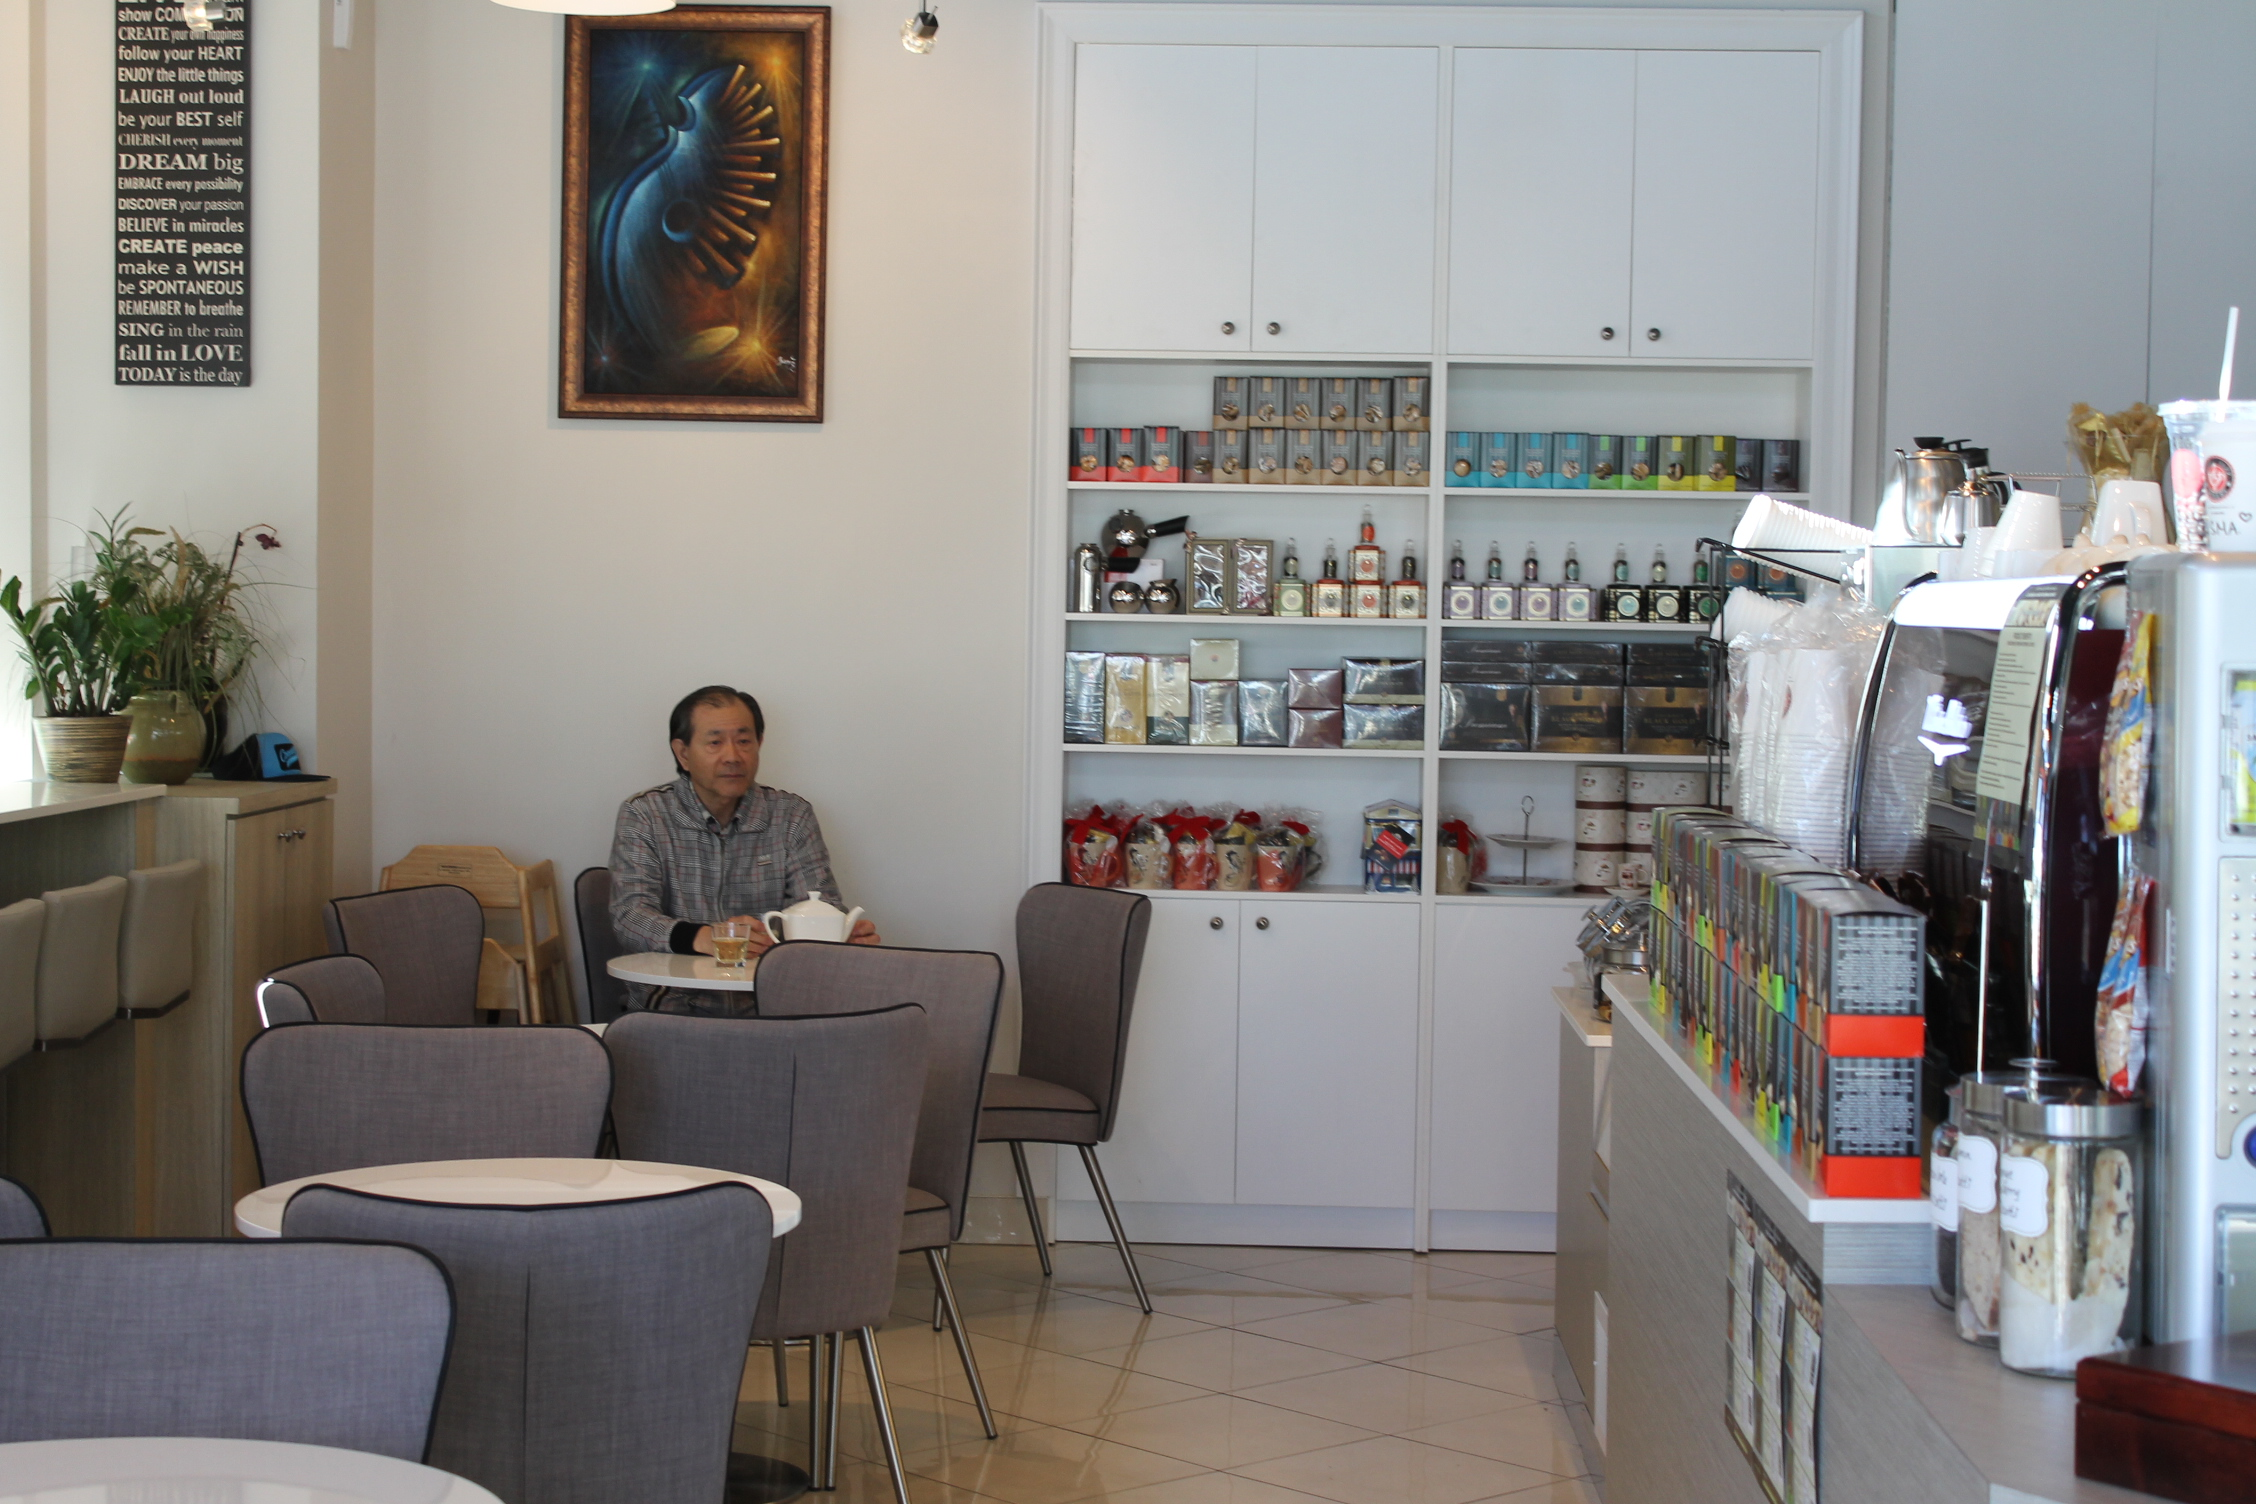 Picture of accessible interior of coffee shop.